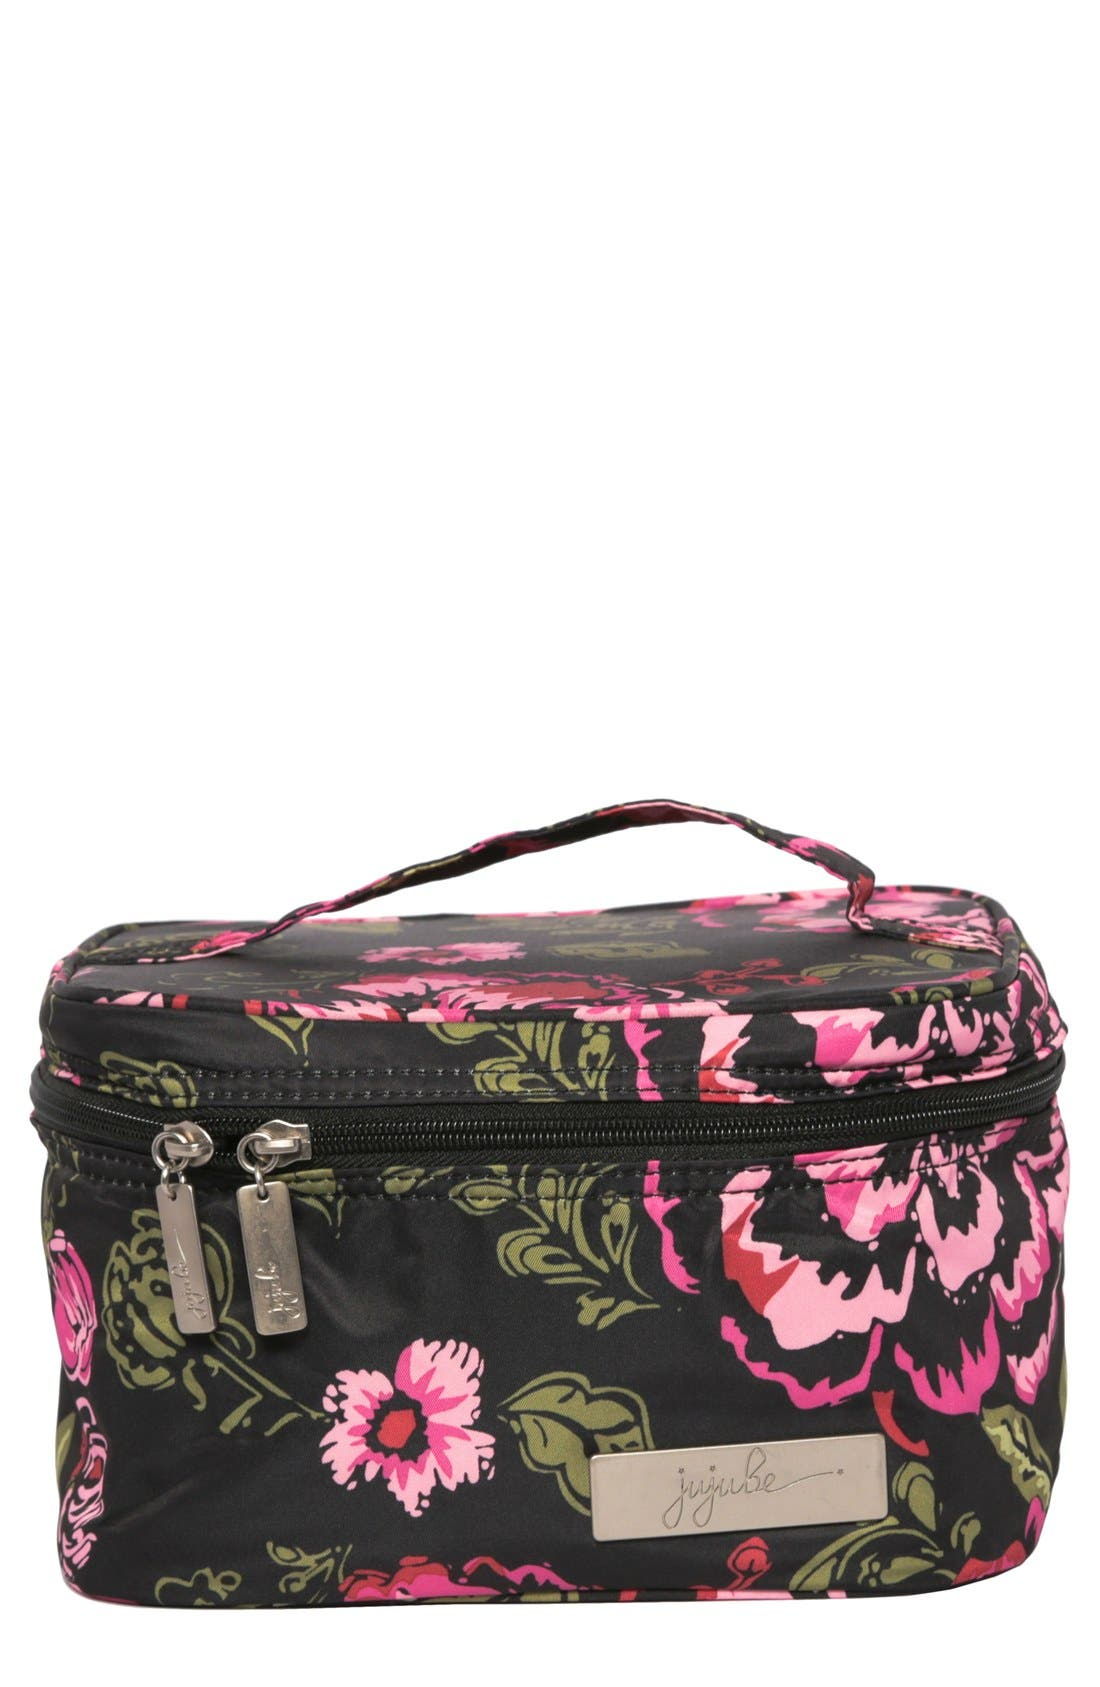 Main Image - Ju-Ju-Be Legacy Be Ready Cosmetics Travel Case